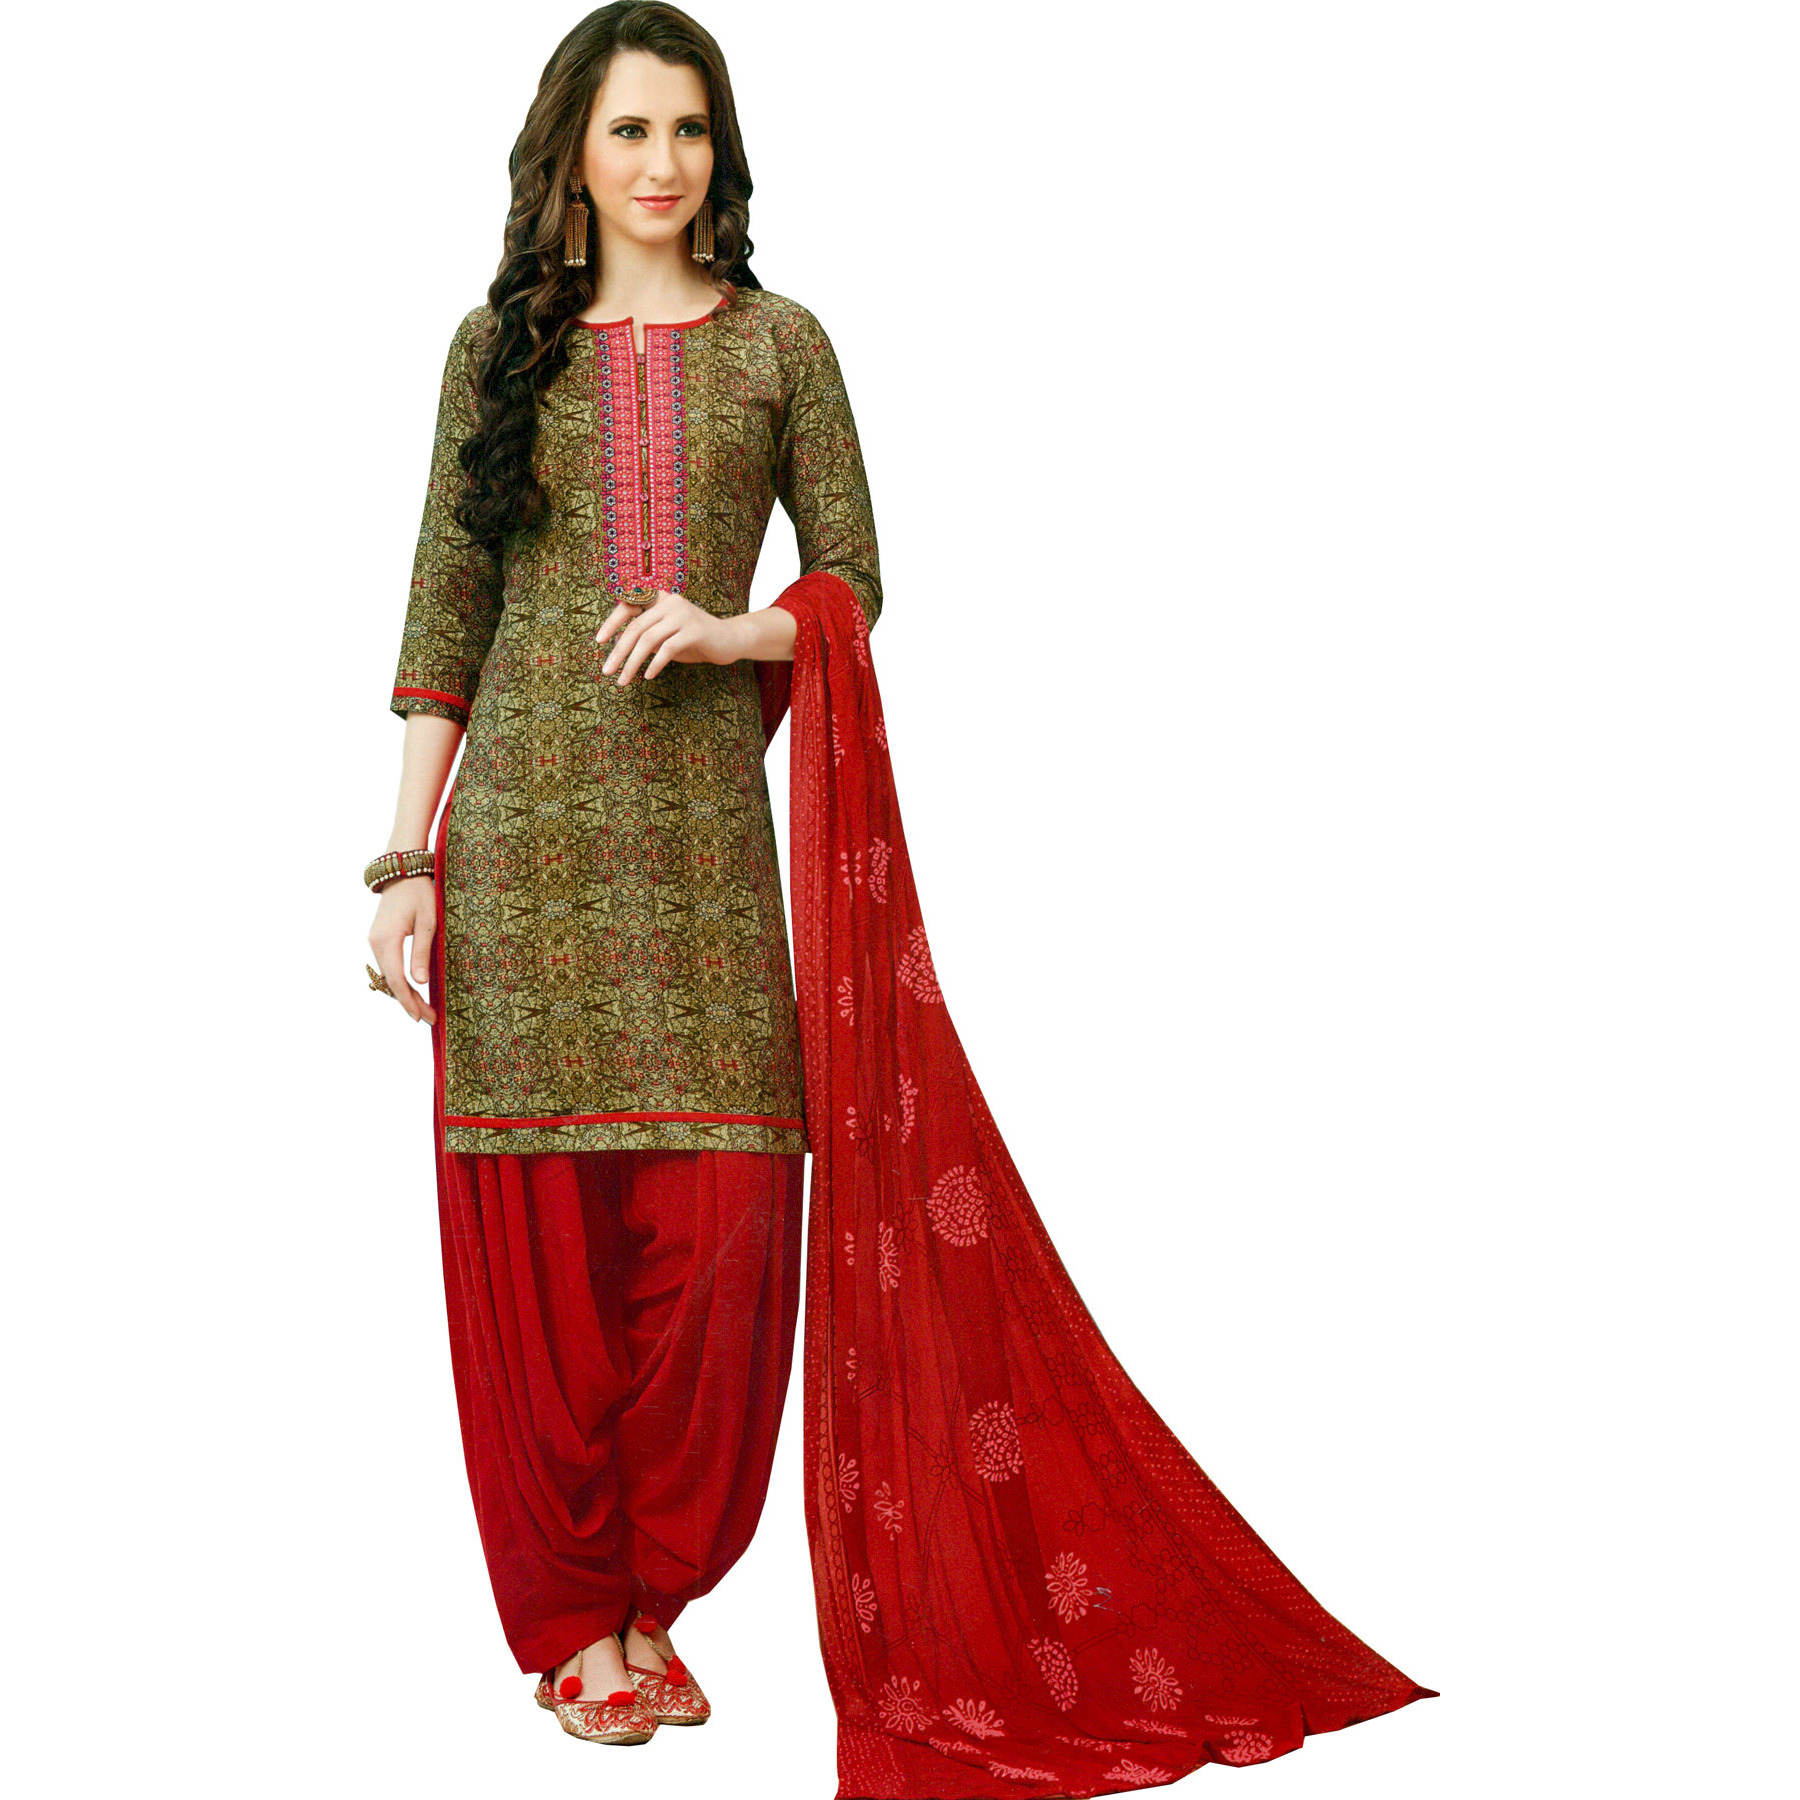 Cornstalk and Red Printed Patiala Salwar Kameez Suit with Embroidered Patch on Neck